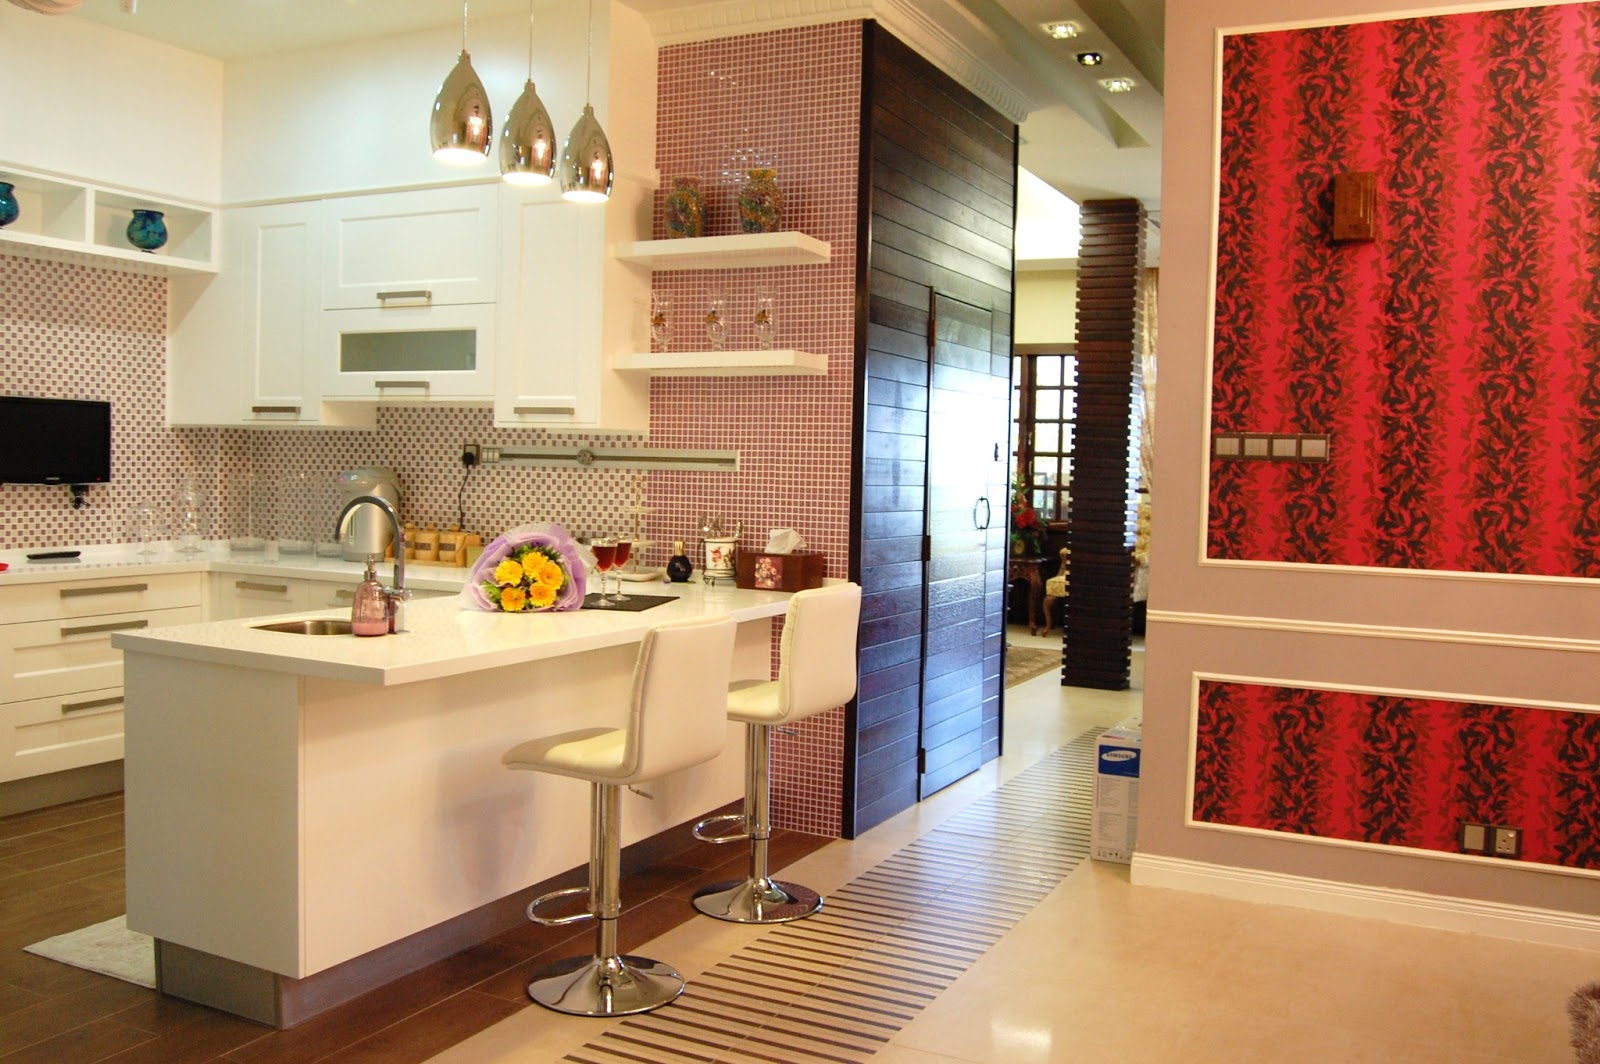 Kitchen Interior Design: Kitchen Cabinet And Interior Design Blog